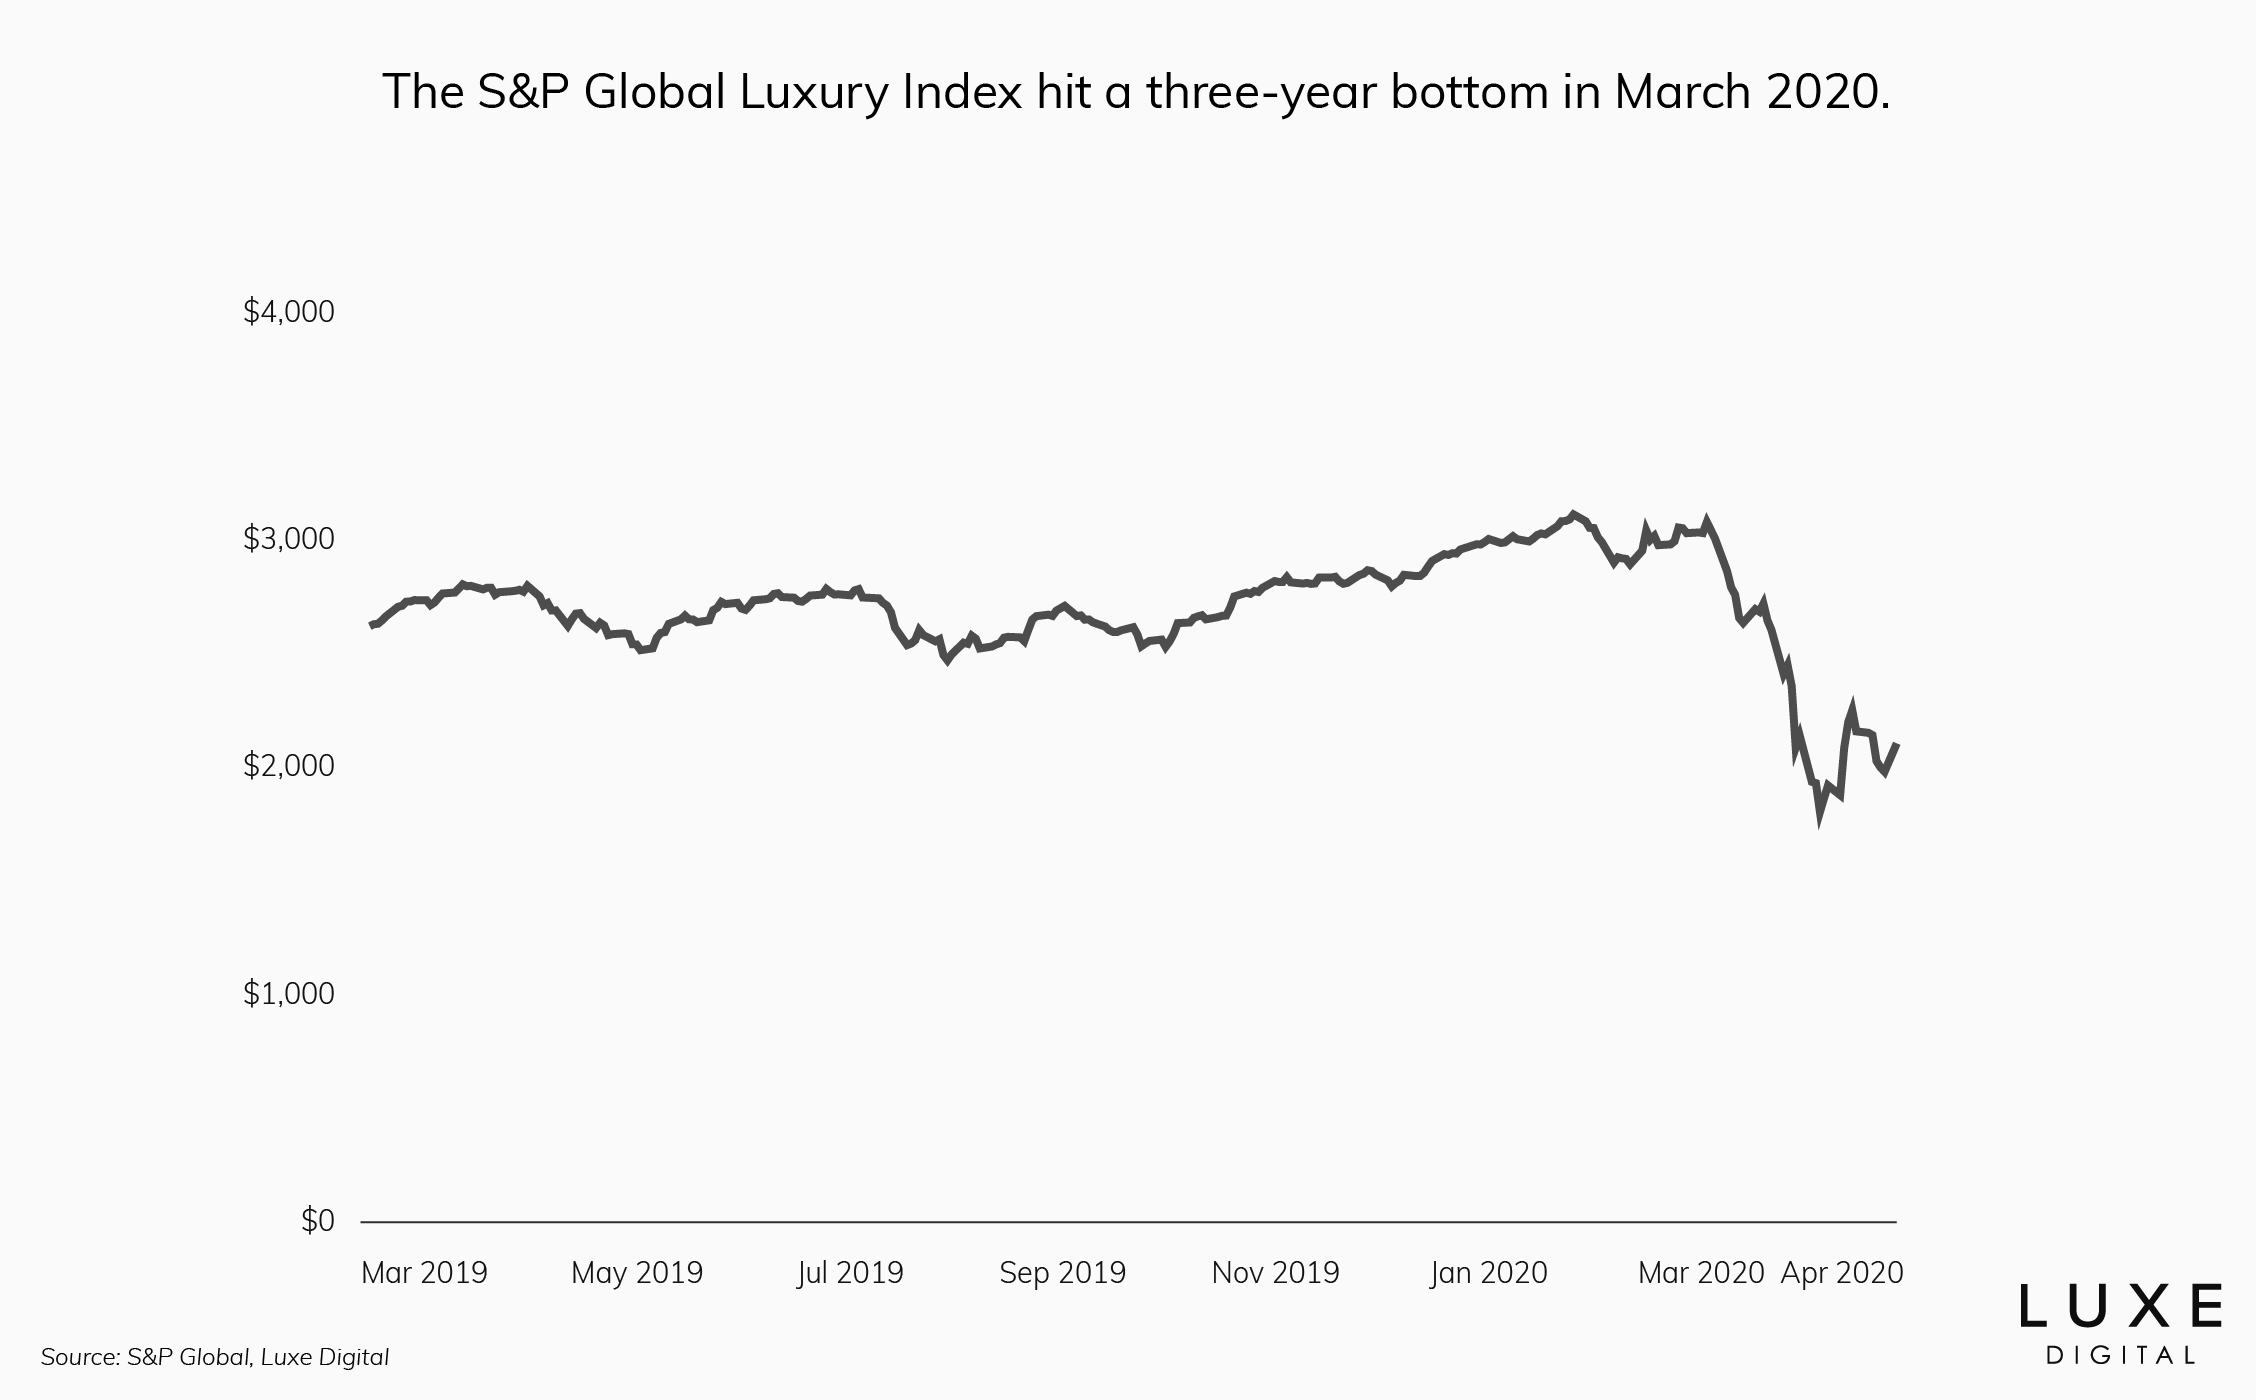 S&P Global Luxury Goods Index performance - Luxe Digital